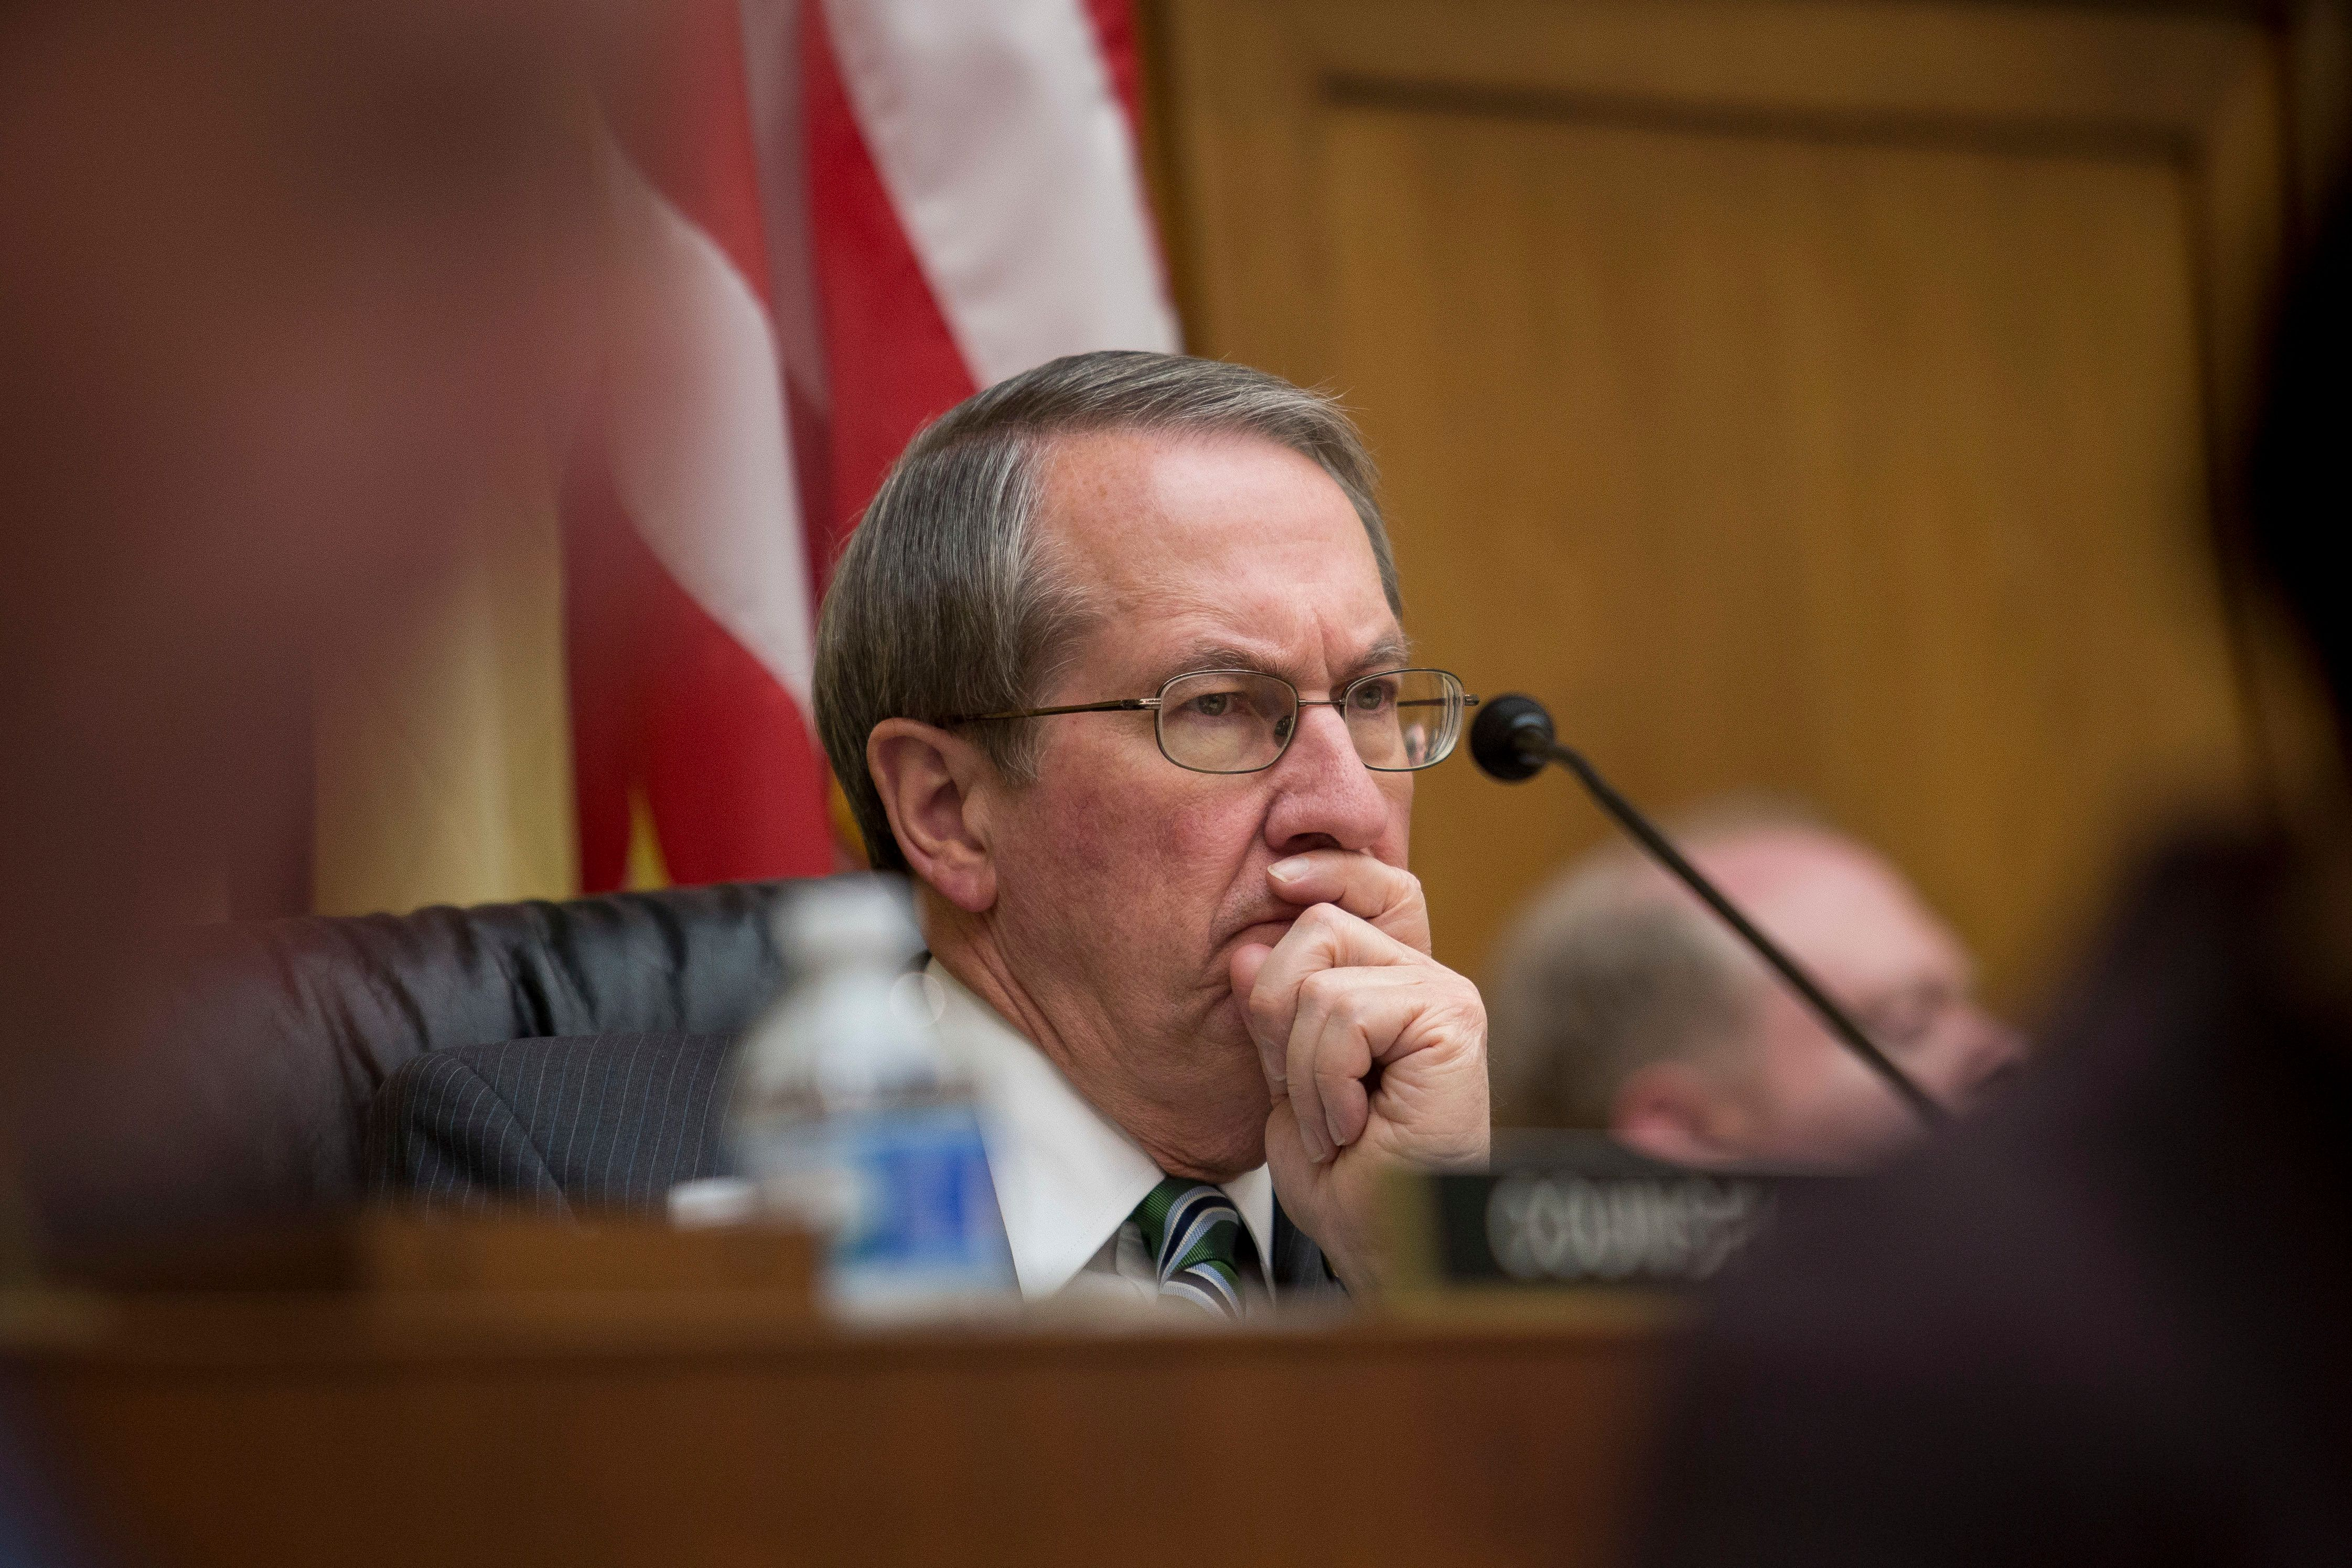 WASHINGTON, DC - MARCH 1: Committee chairman Rep. Bob Goodlatte (R-VA) listens to testimony from Federal Bureau of Investigation Director James Comey during a House Judiciary Committee hearing titled 'The Encryption Tightrope: Balancing Americans' Security and Privacy,' on Capitol Hill, March 1, 2016 in Washington, DC. Apple is fighting a court order requiring them to assist the FBI in opening the encrypted iPhone belonging to San Bernardino shooter Syed Farook. (Photo by Drew Angerer/Getty Images)